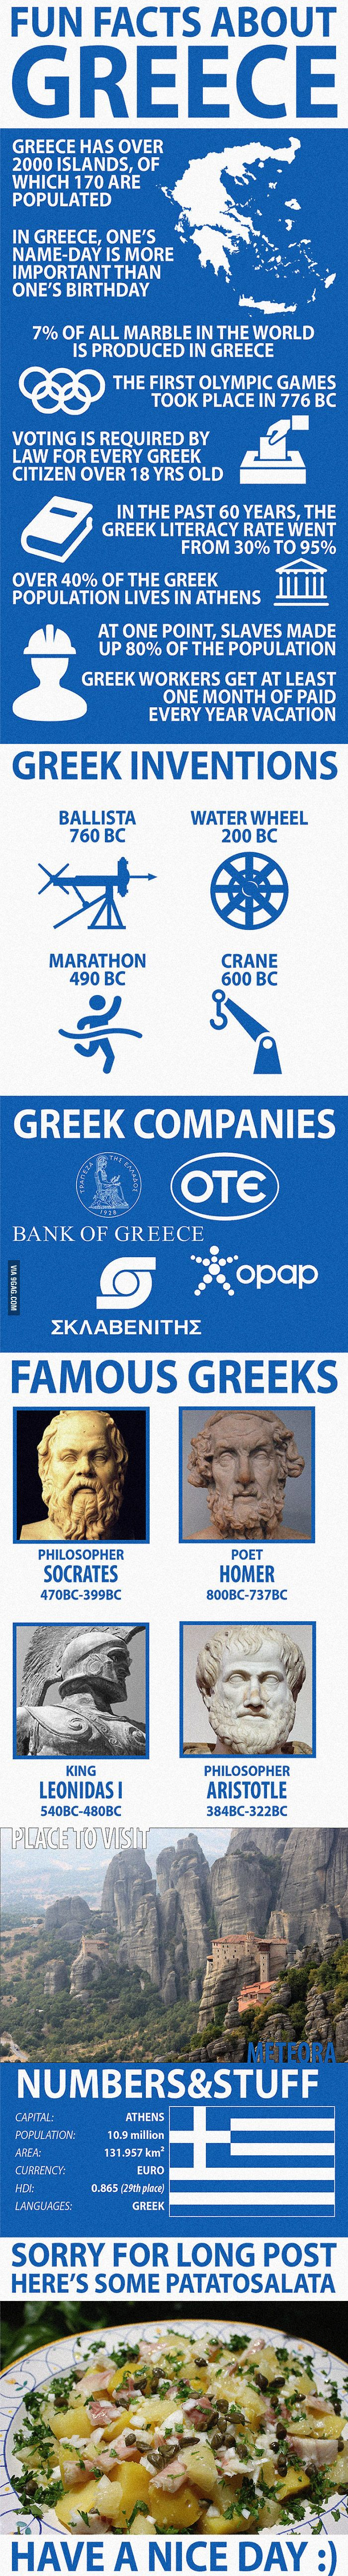 Fun Facts about Greece